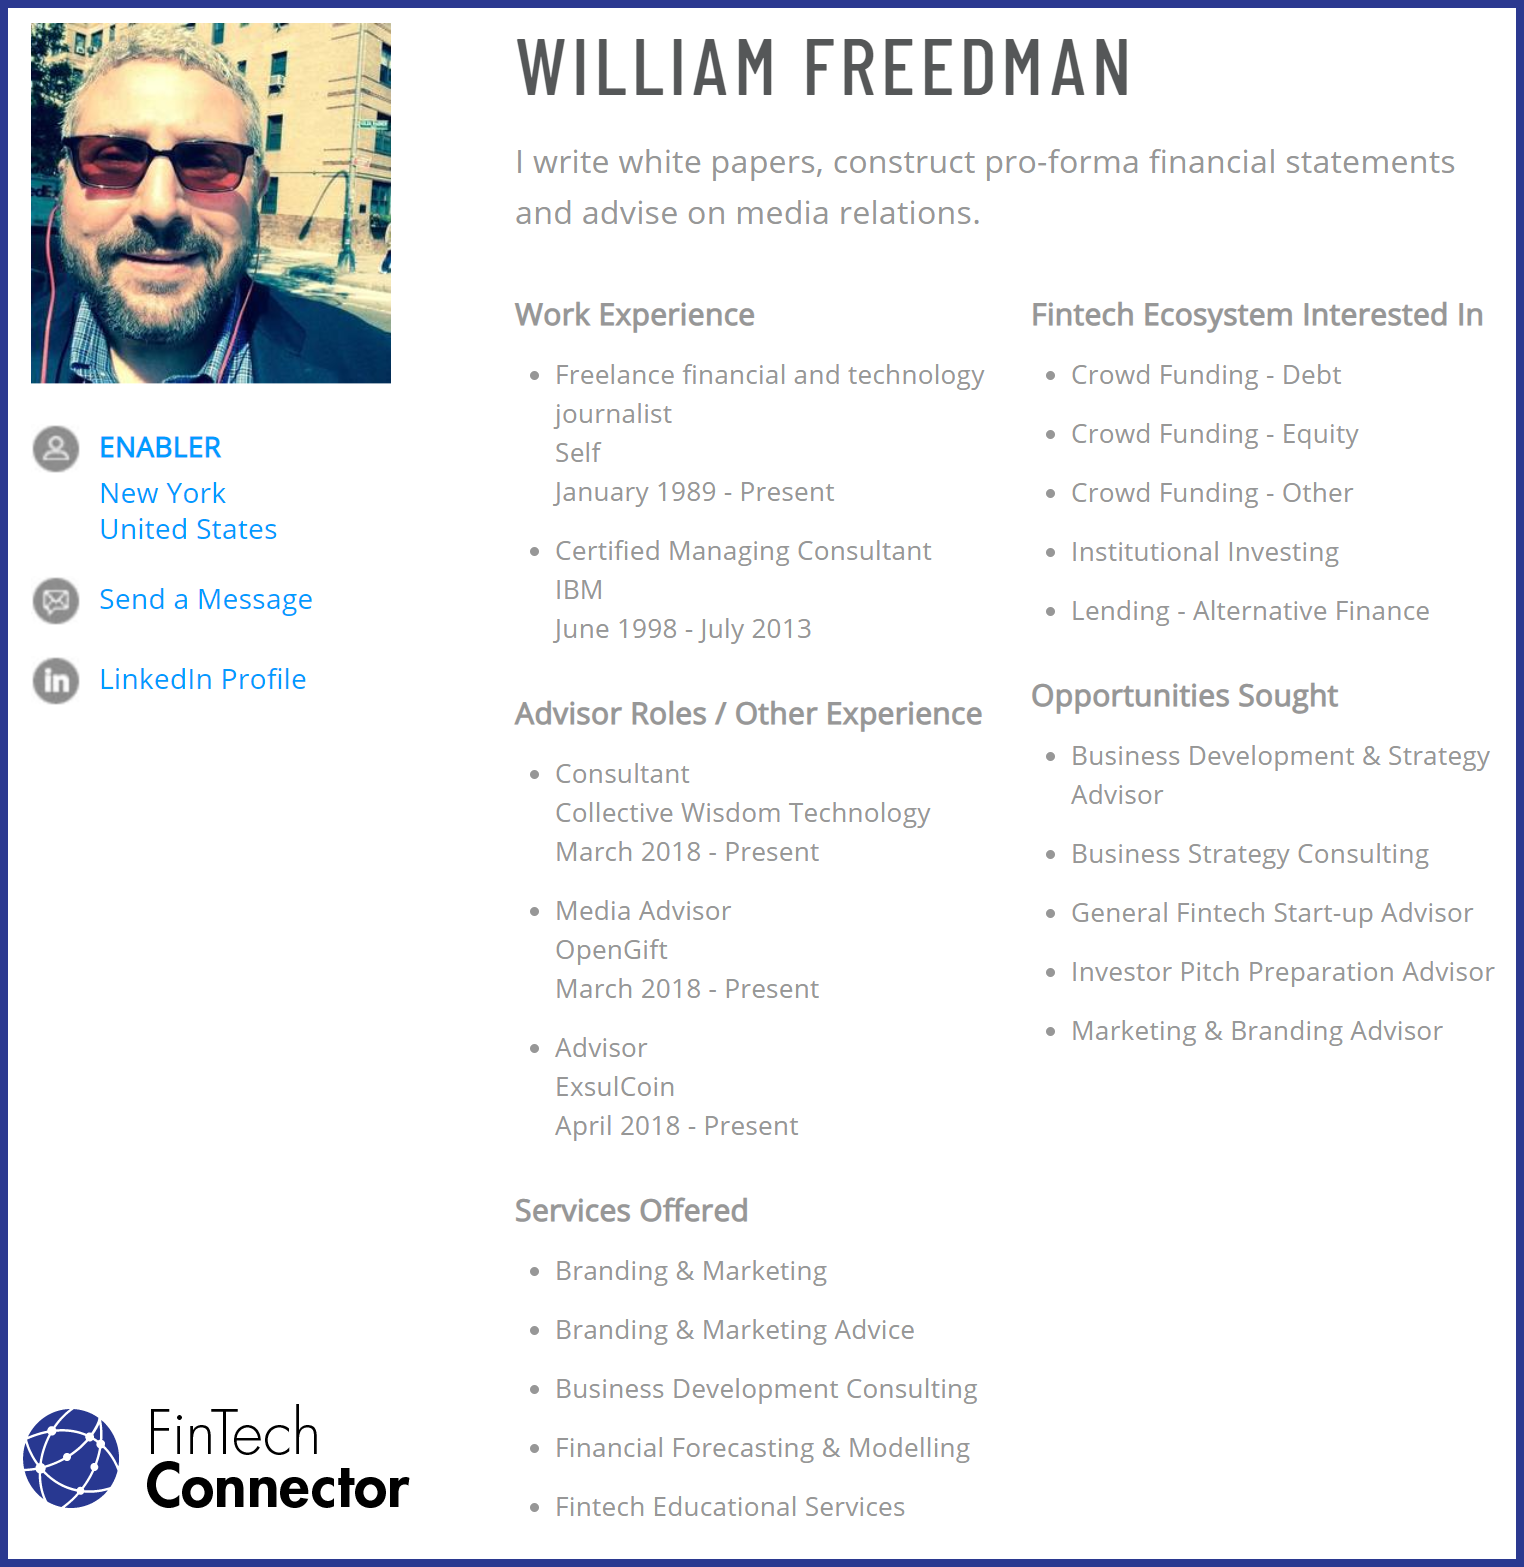 Connect with William Freedman via FinTech Connector